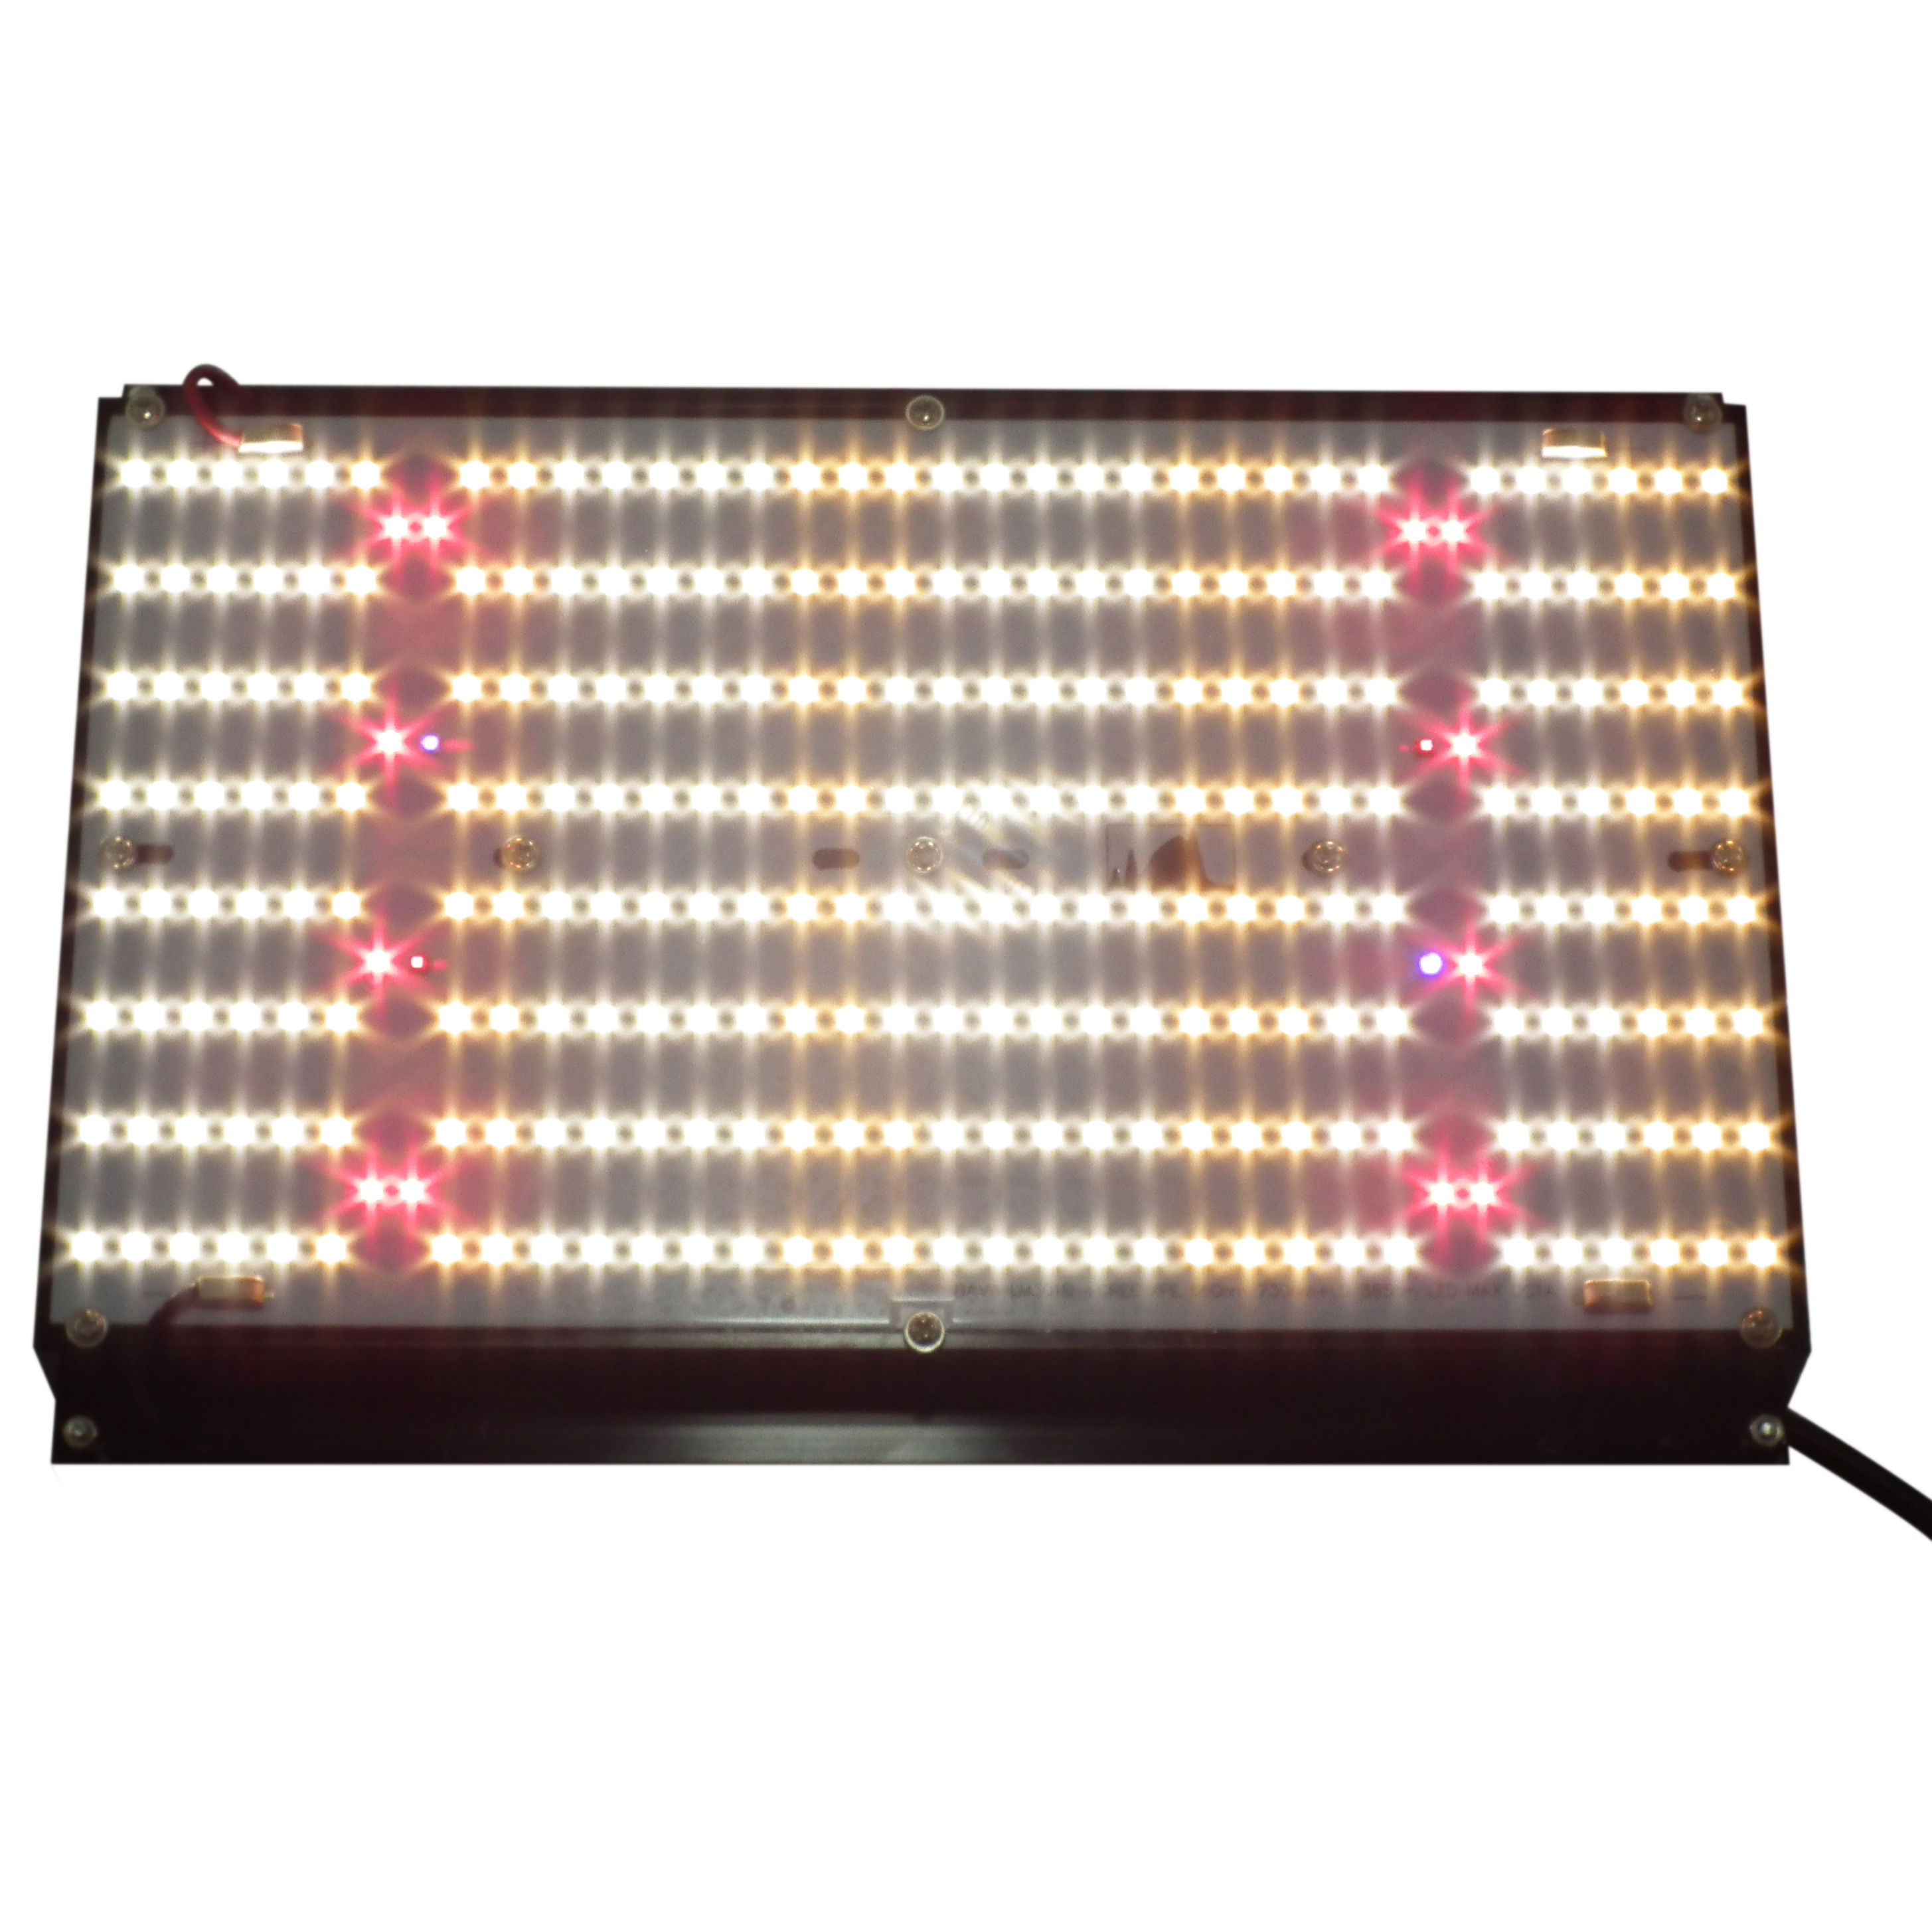 Shenzhen Bava led corn 120w full spectum Samsung lm 301b mix LG uv <strong>crees</strong> 730nm far red led grow light